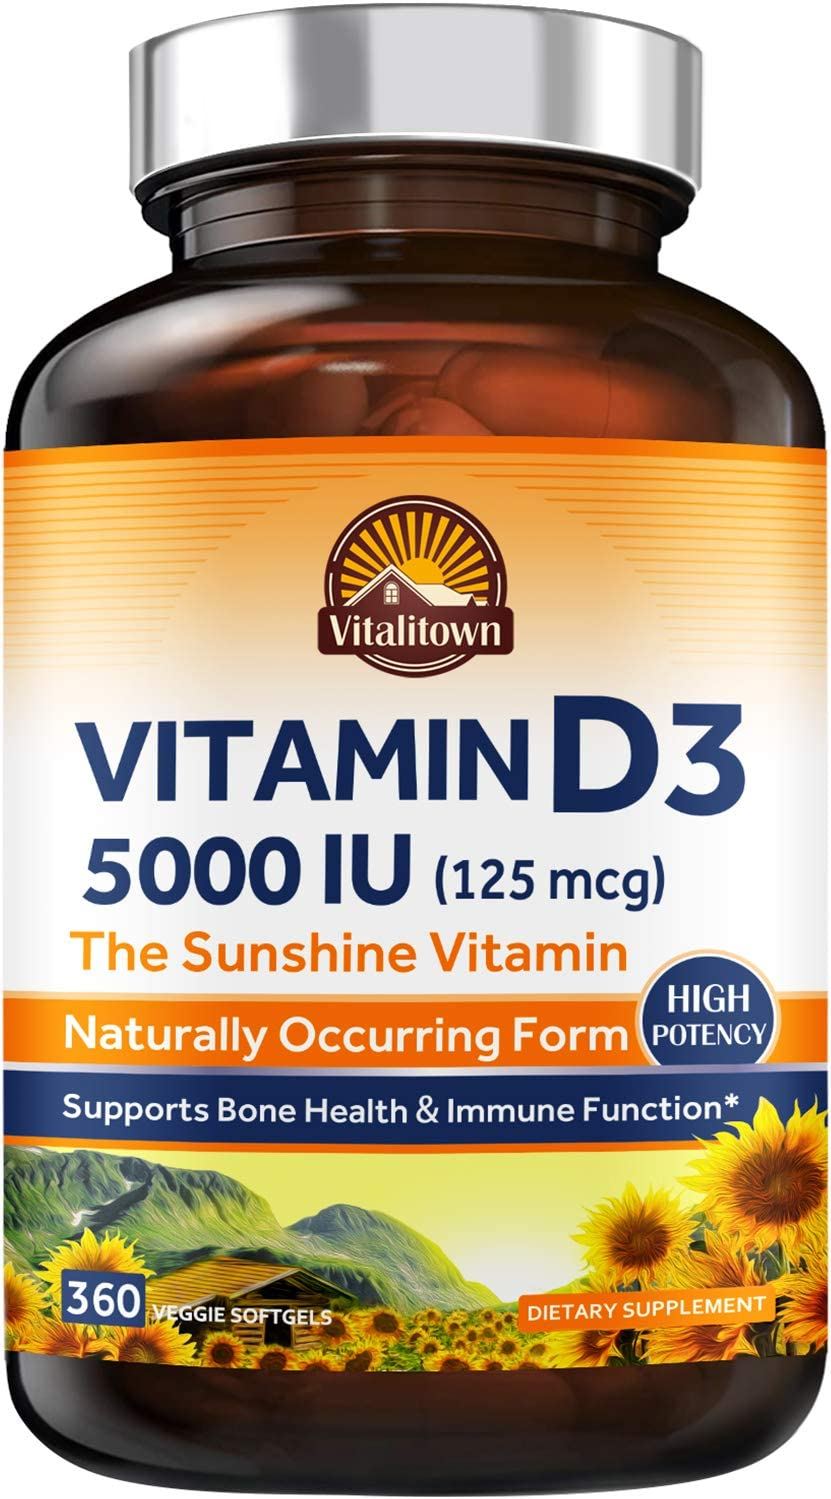 Vitalitown Vitamin D3 5000 IU (125 mcg), Supports Bone, Immune, Teeth, Muscle & Nerve Health, High Potency Natural Form D3 in Easy-to-Swallow Vegetarian Softgels, Non-GMO Dairy & Gluten Free 360ct